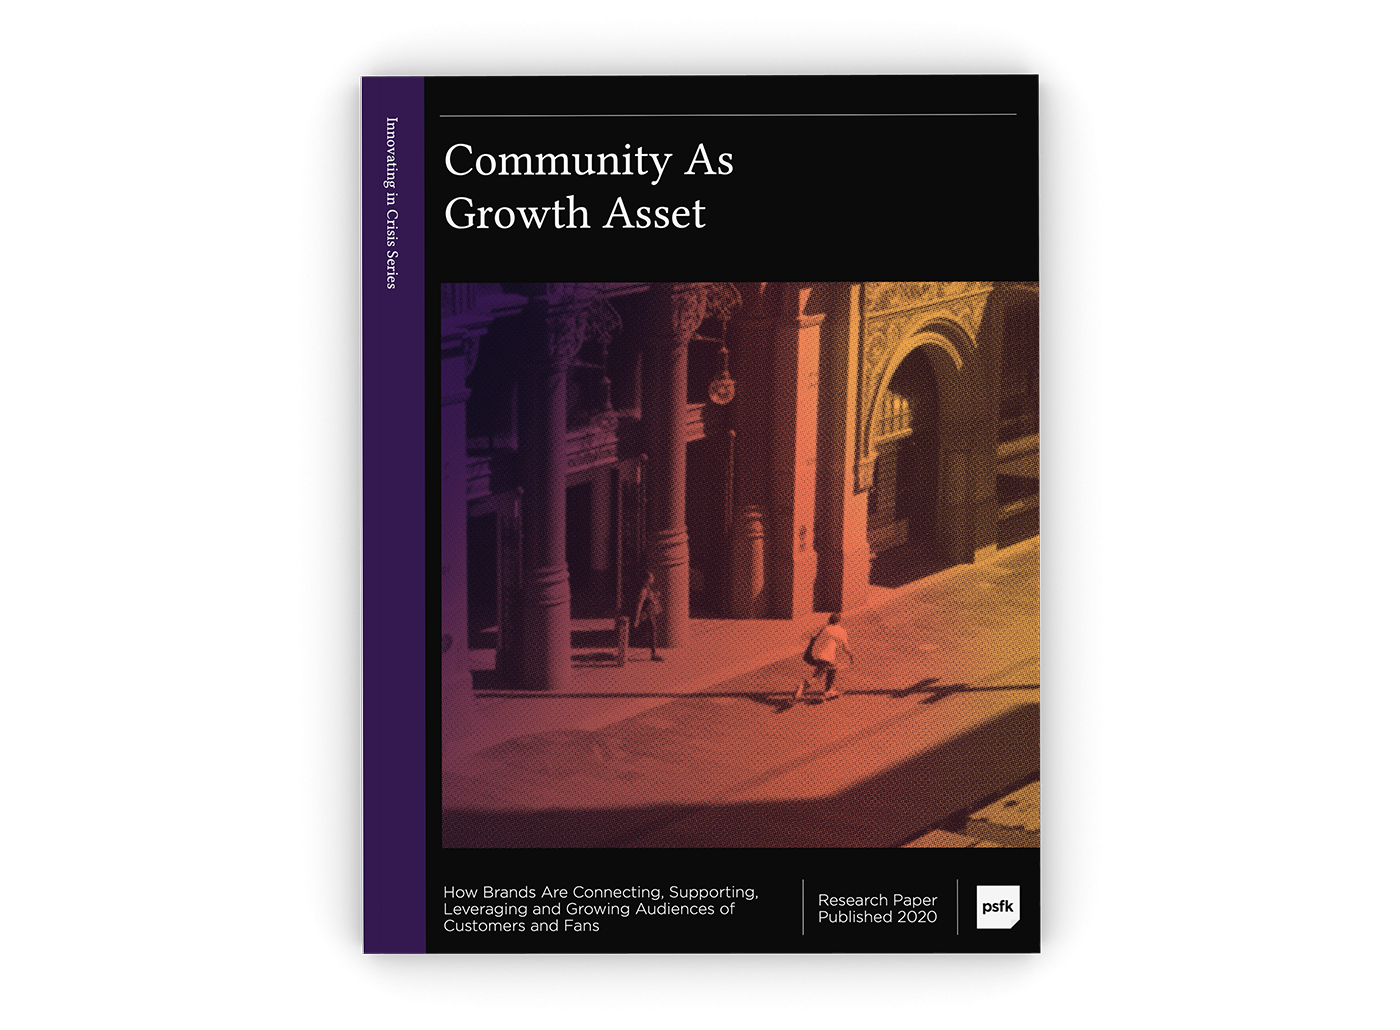 Community As Growth Asset